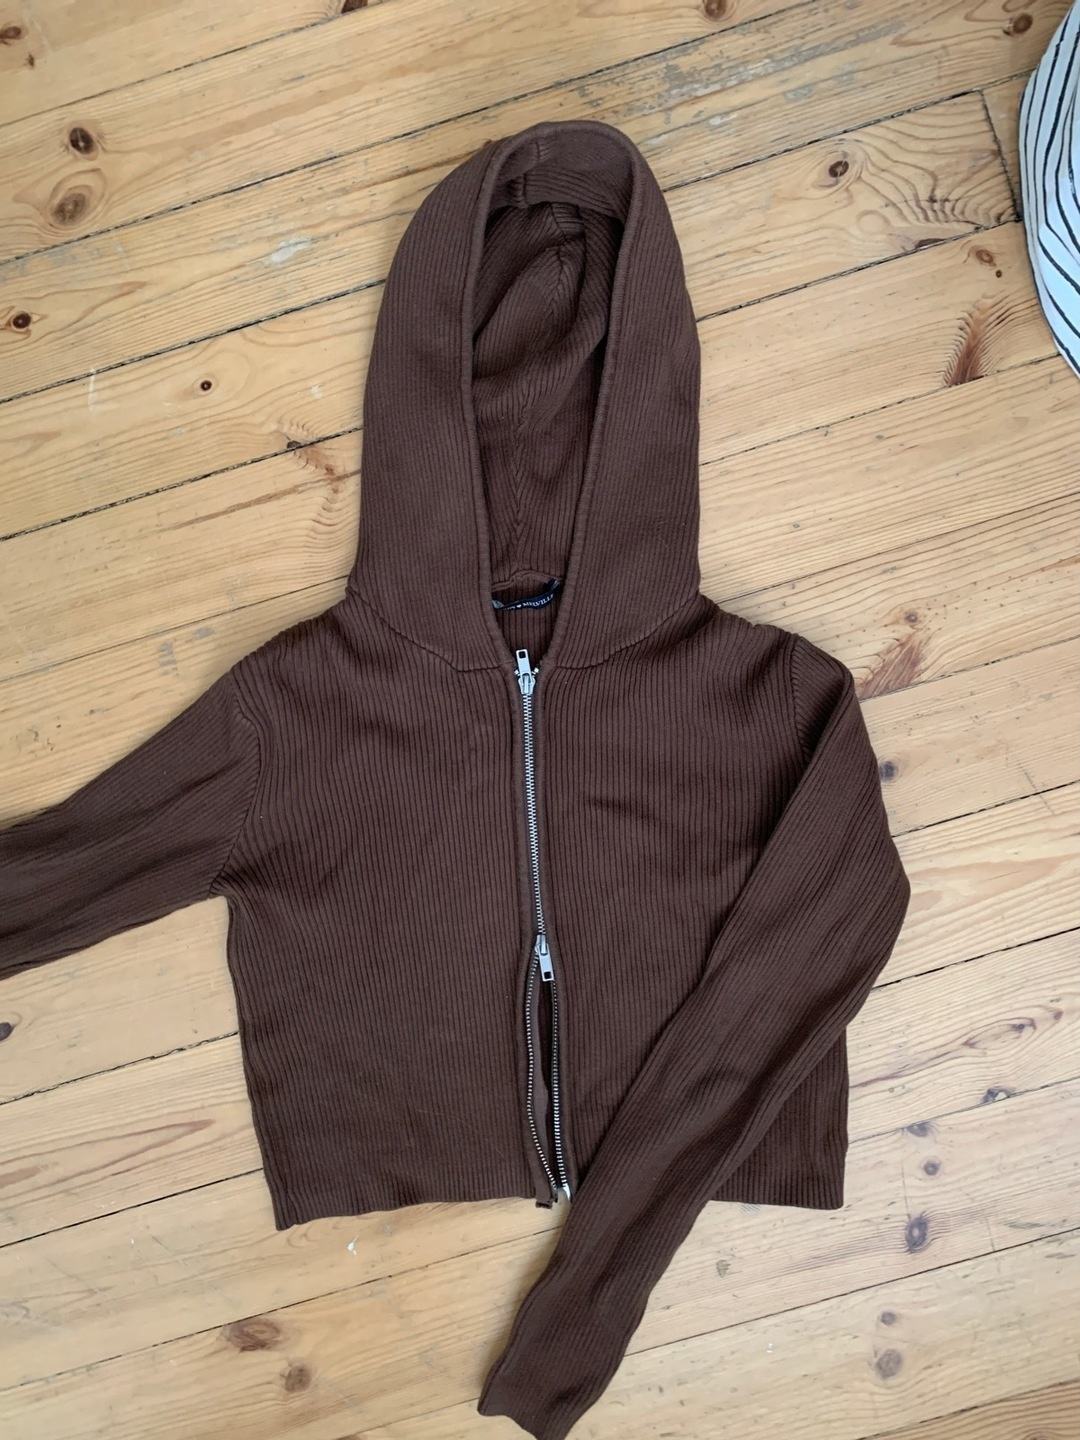 Women's jumpers & cardigans - BRANDY MELVILLE photo 1